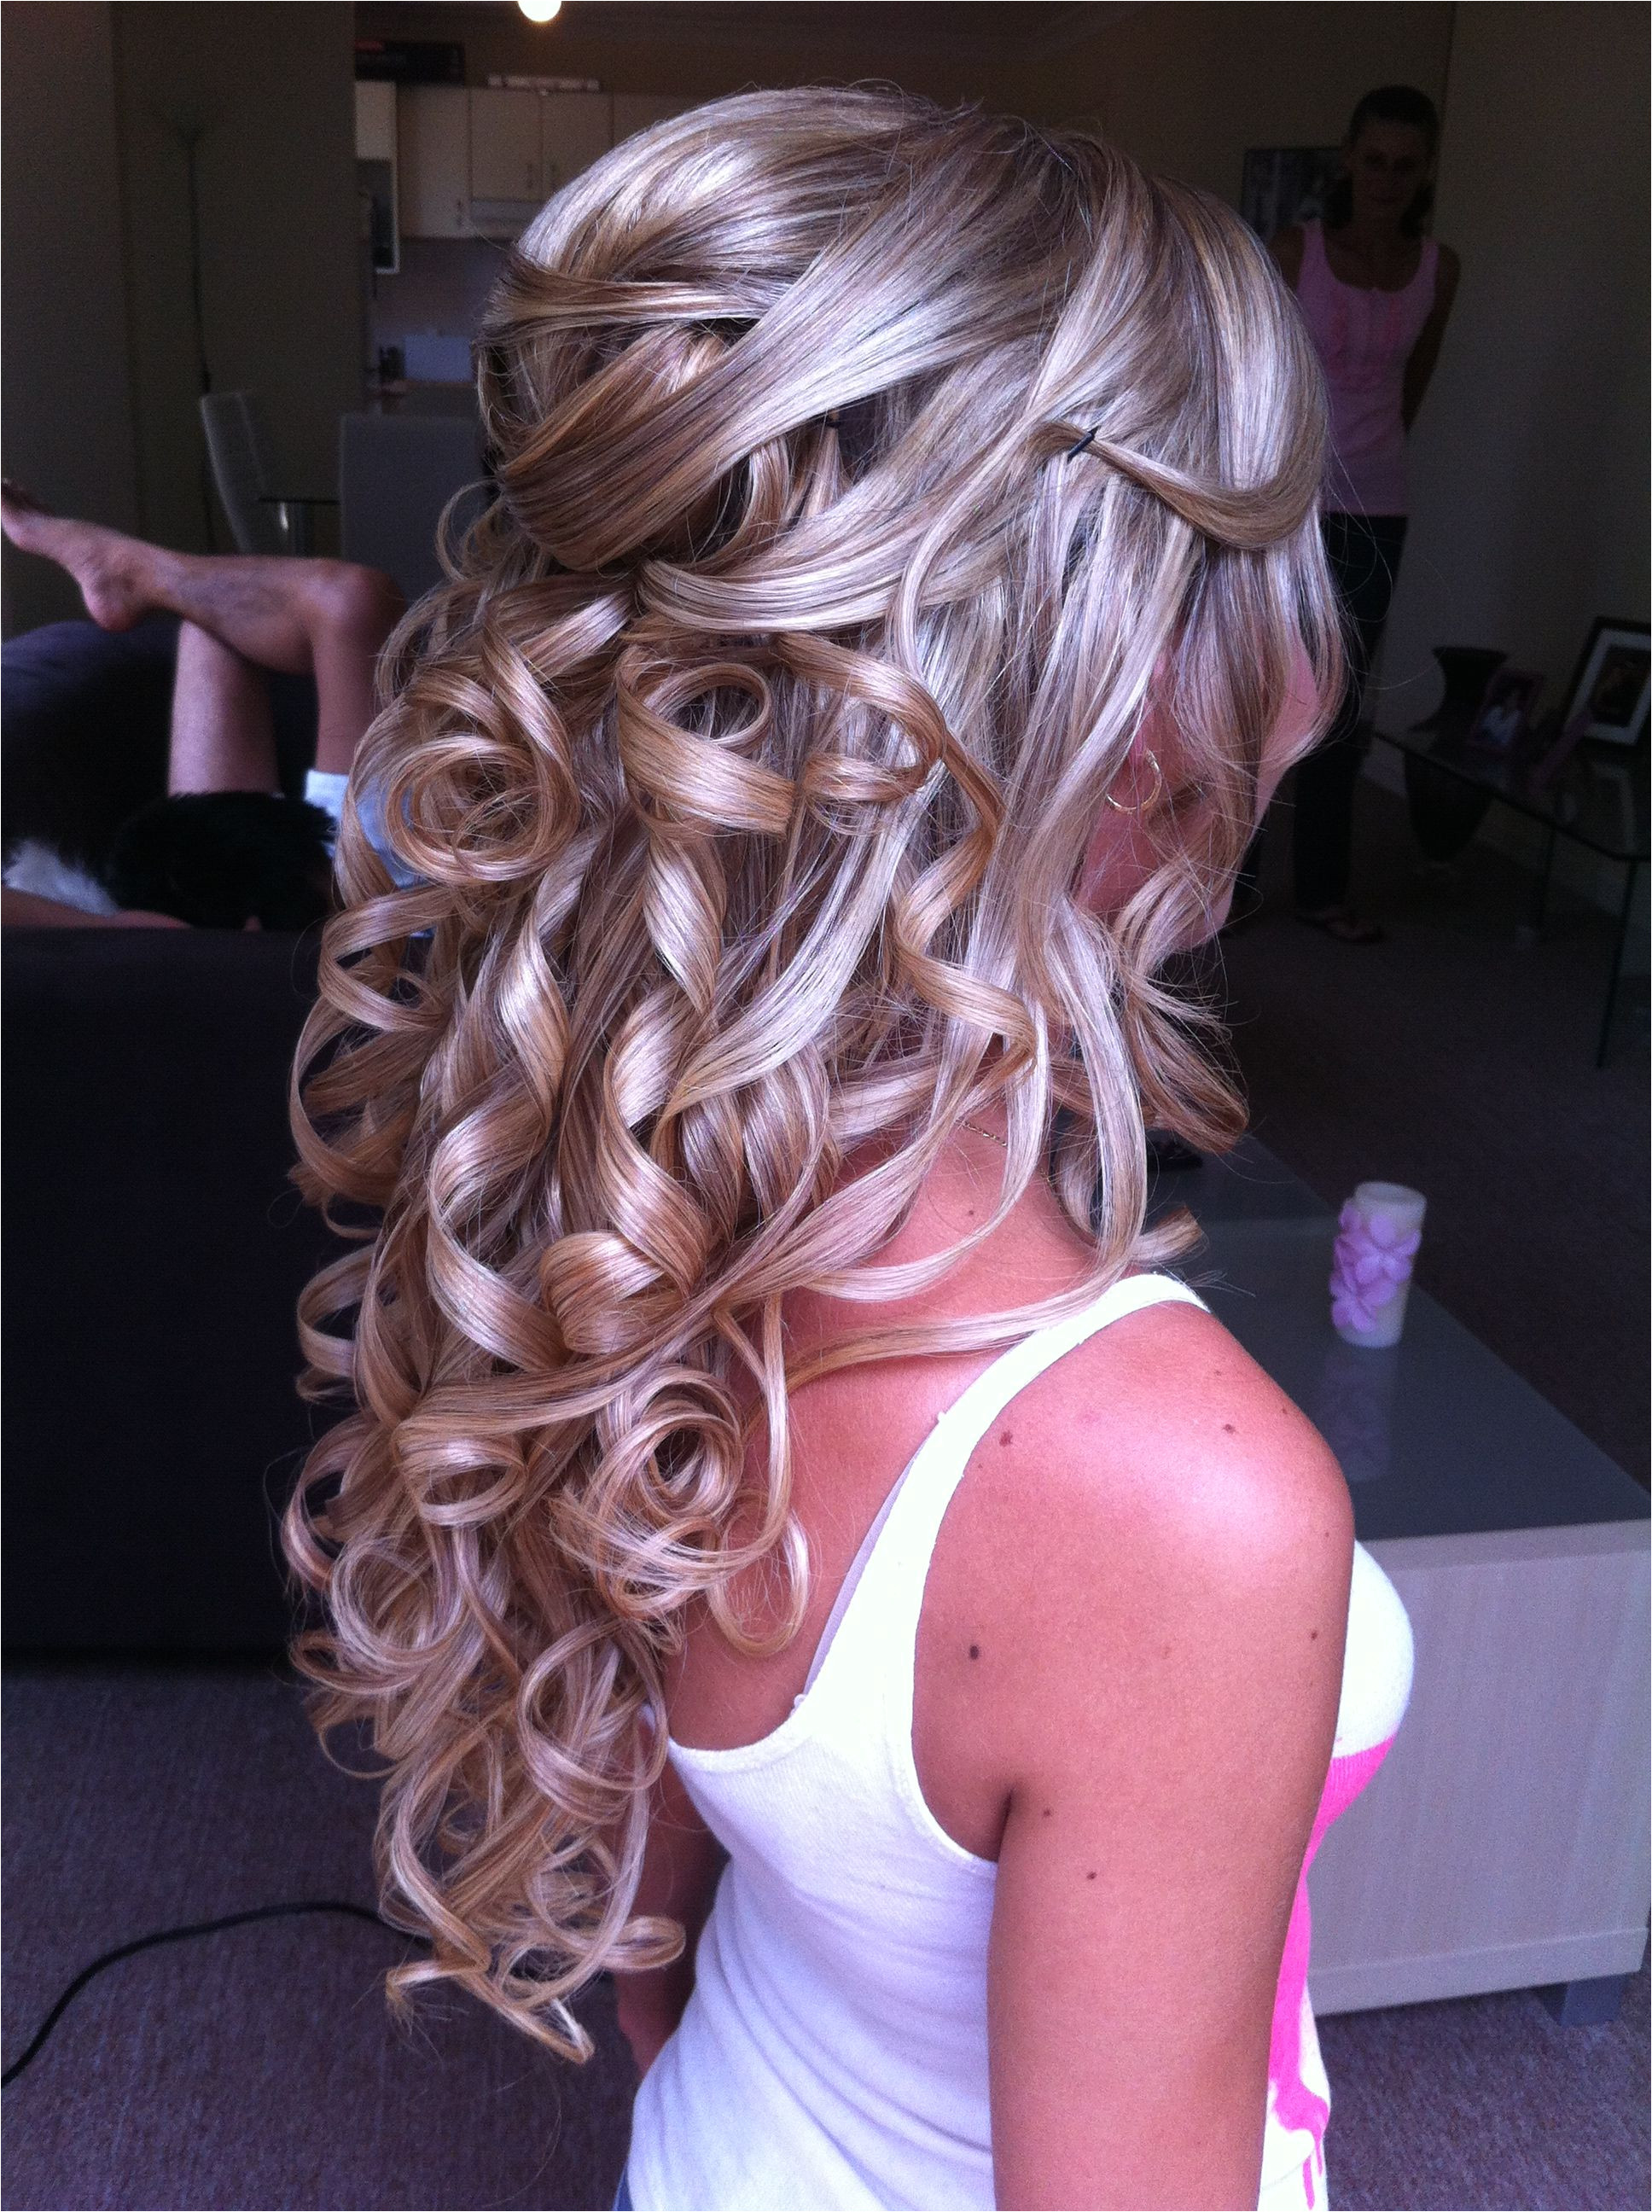 half updo Prom Hairstyles For Long Hair Curly Medium Wedding Hairstyles Long Curly Wedding